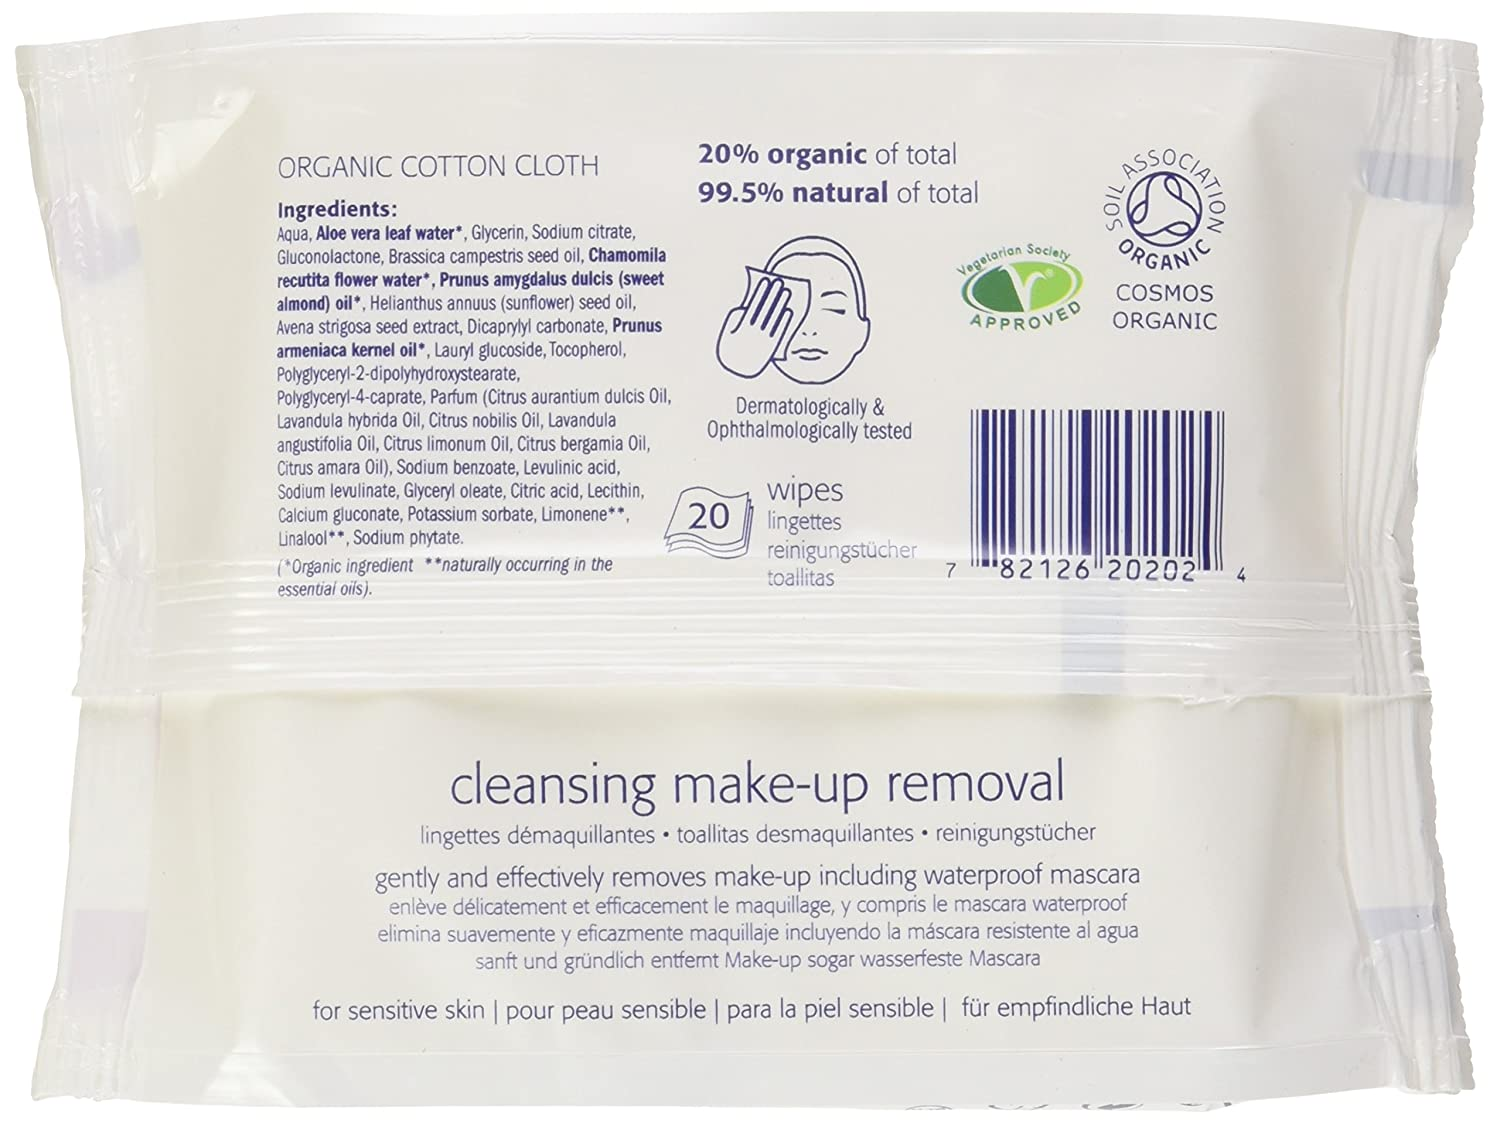 Amazon.com : Natracare Cleansing Make Up Removal Wipes, 0.4315 Pound : Beauty